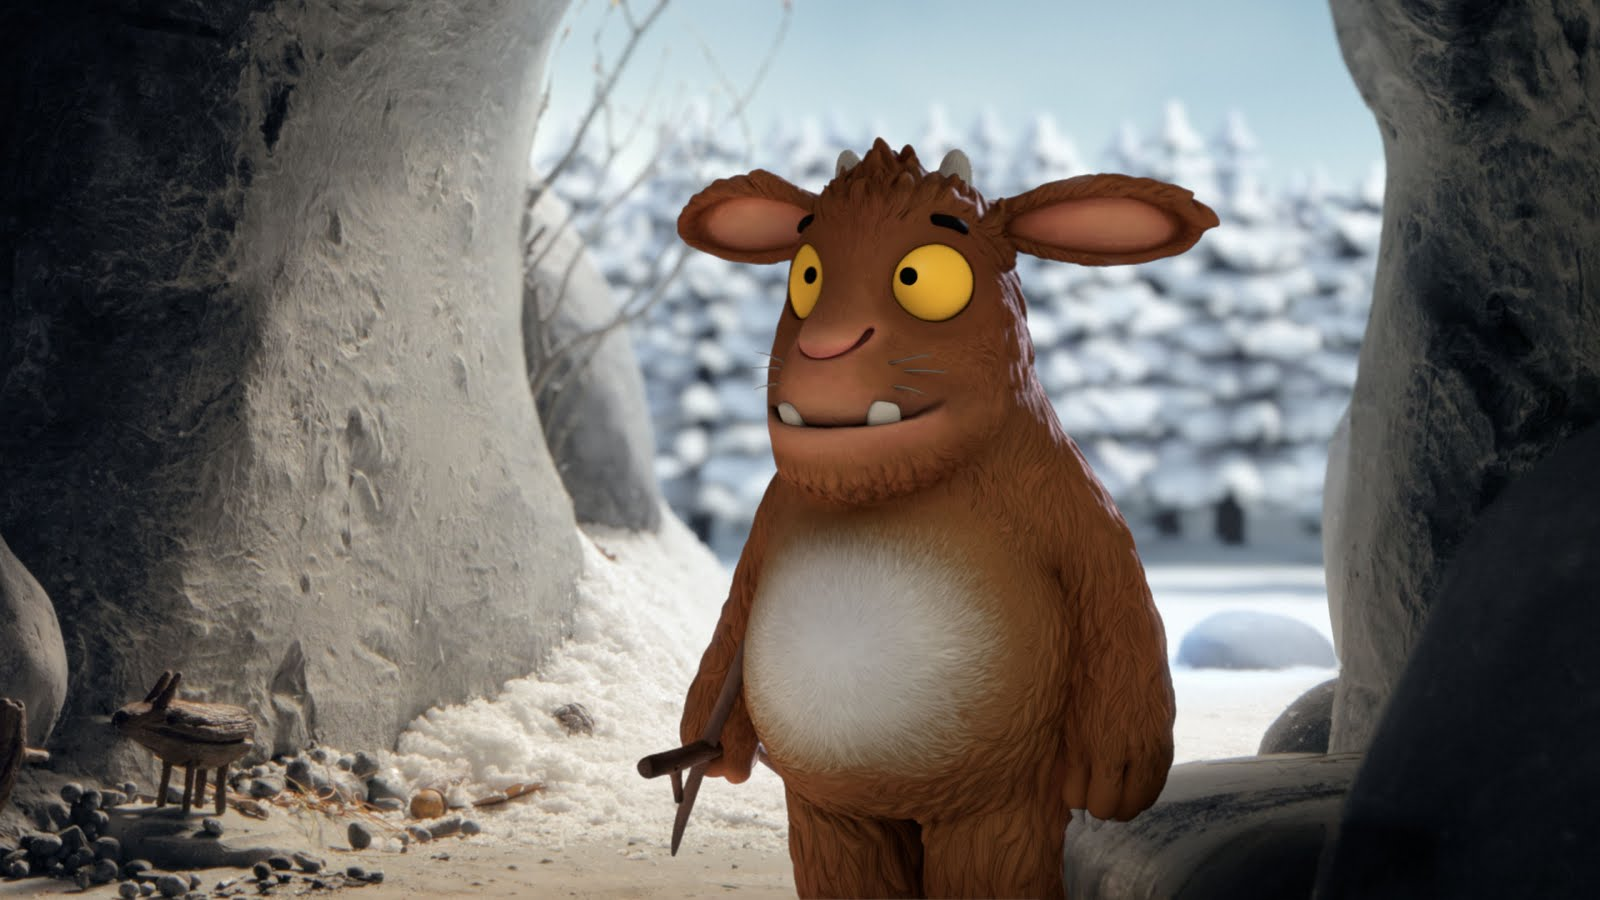 The Gruffalo´s Child at the cave entrance